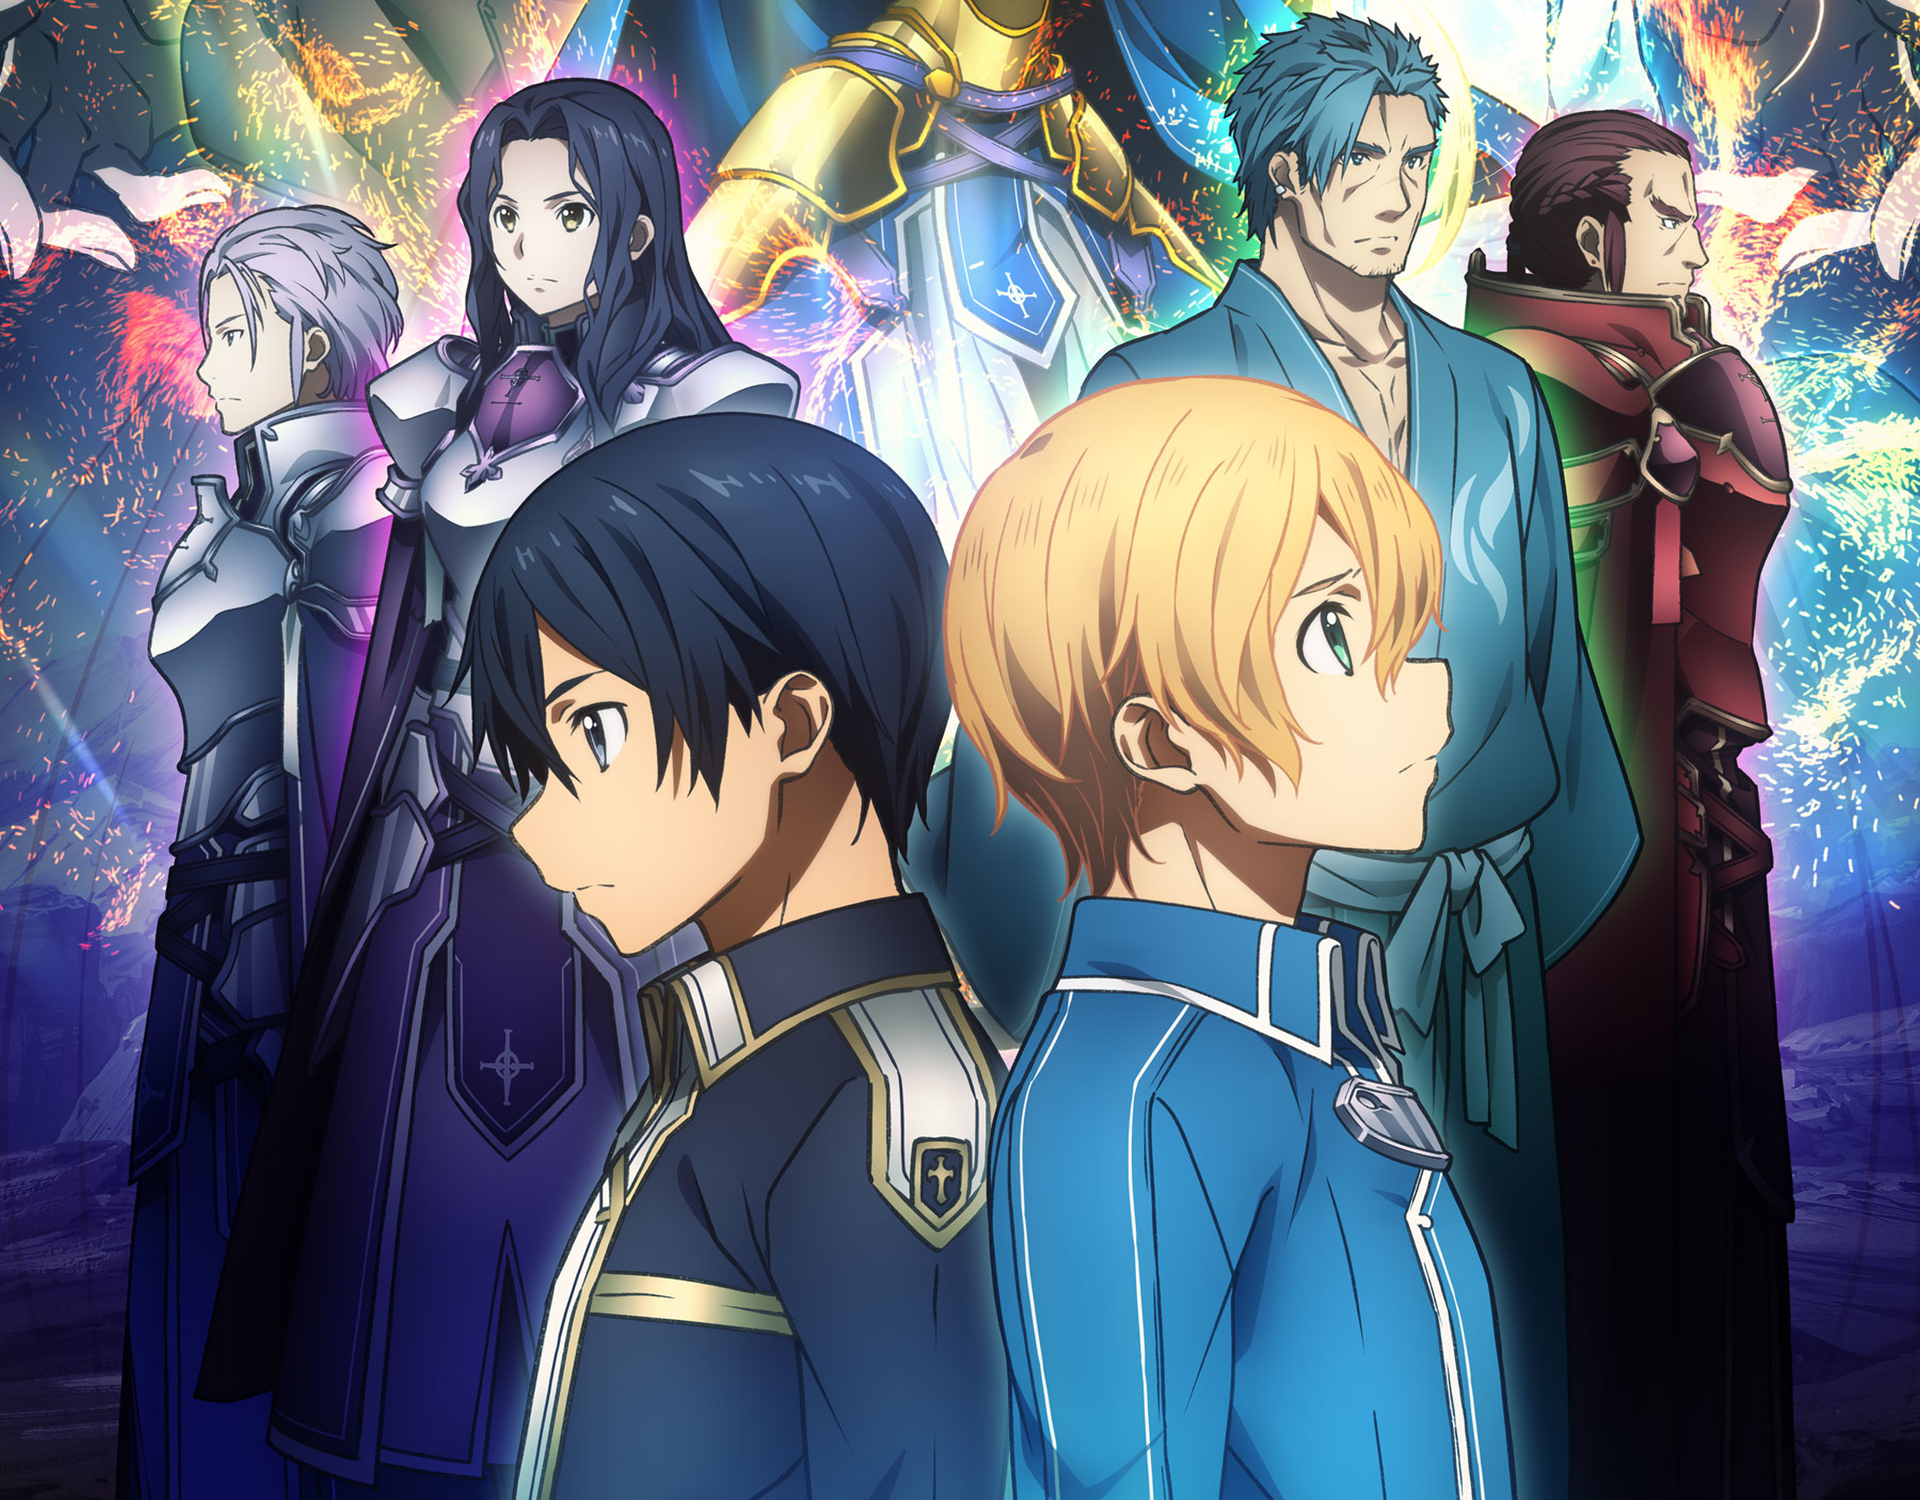 Free Download Sword Art Online Alicization Hd Wallpaper Sword Art Sword Art Online Online Art